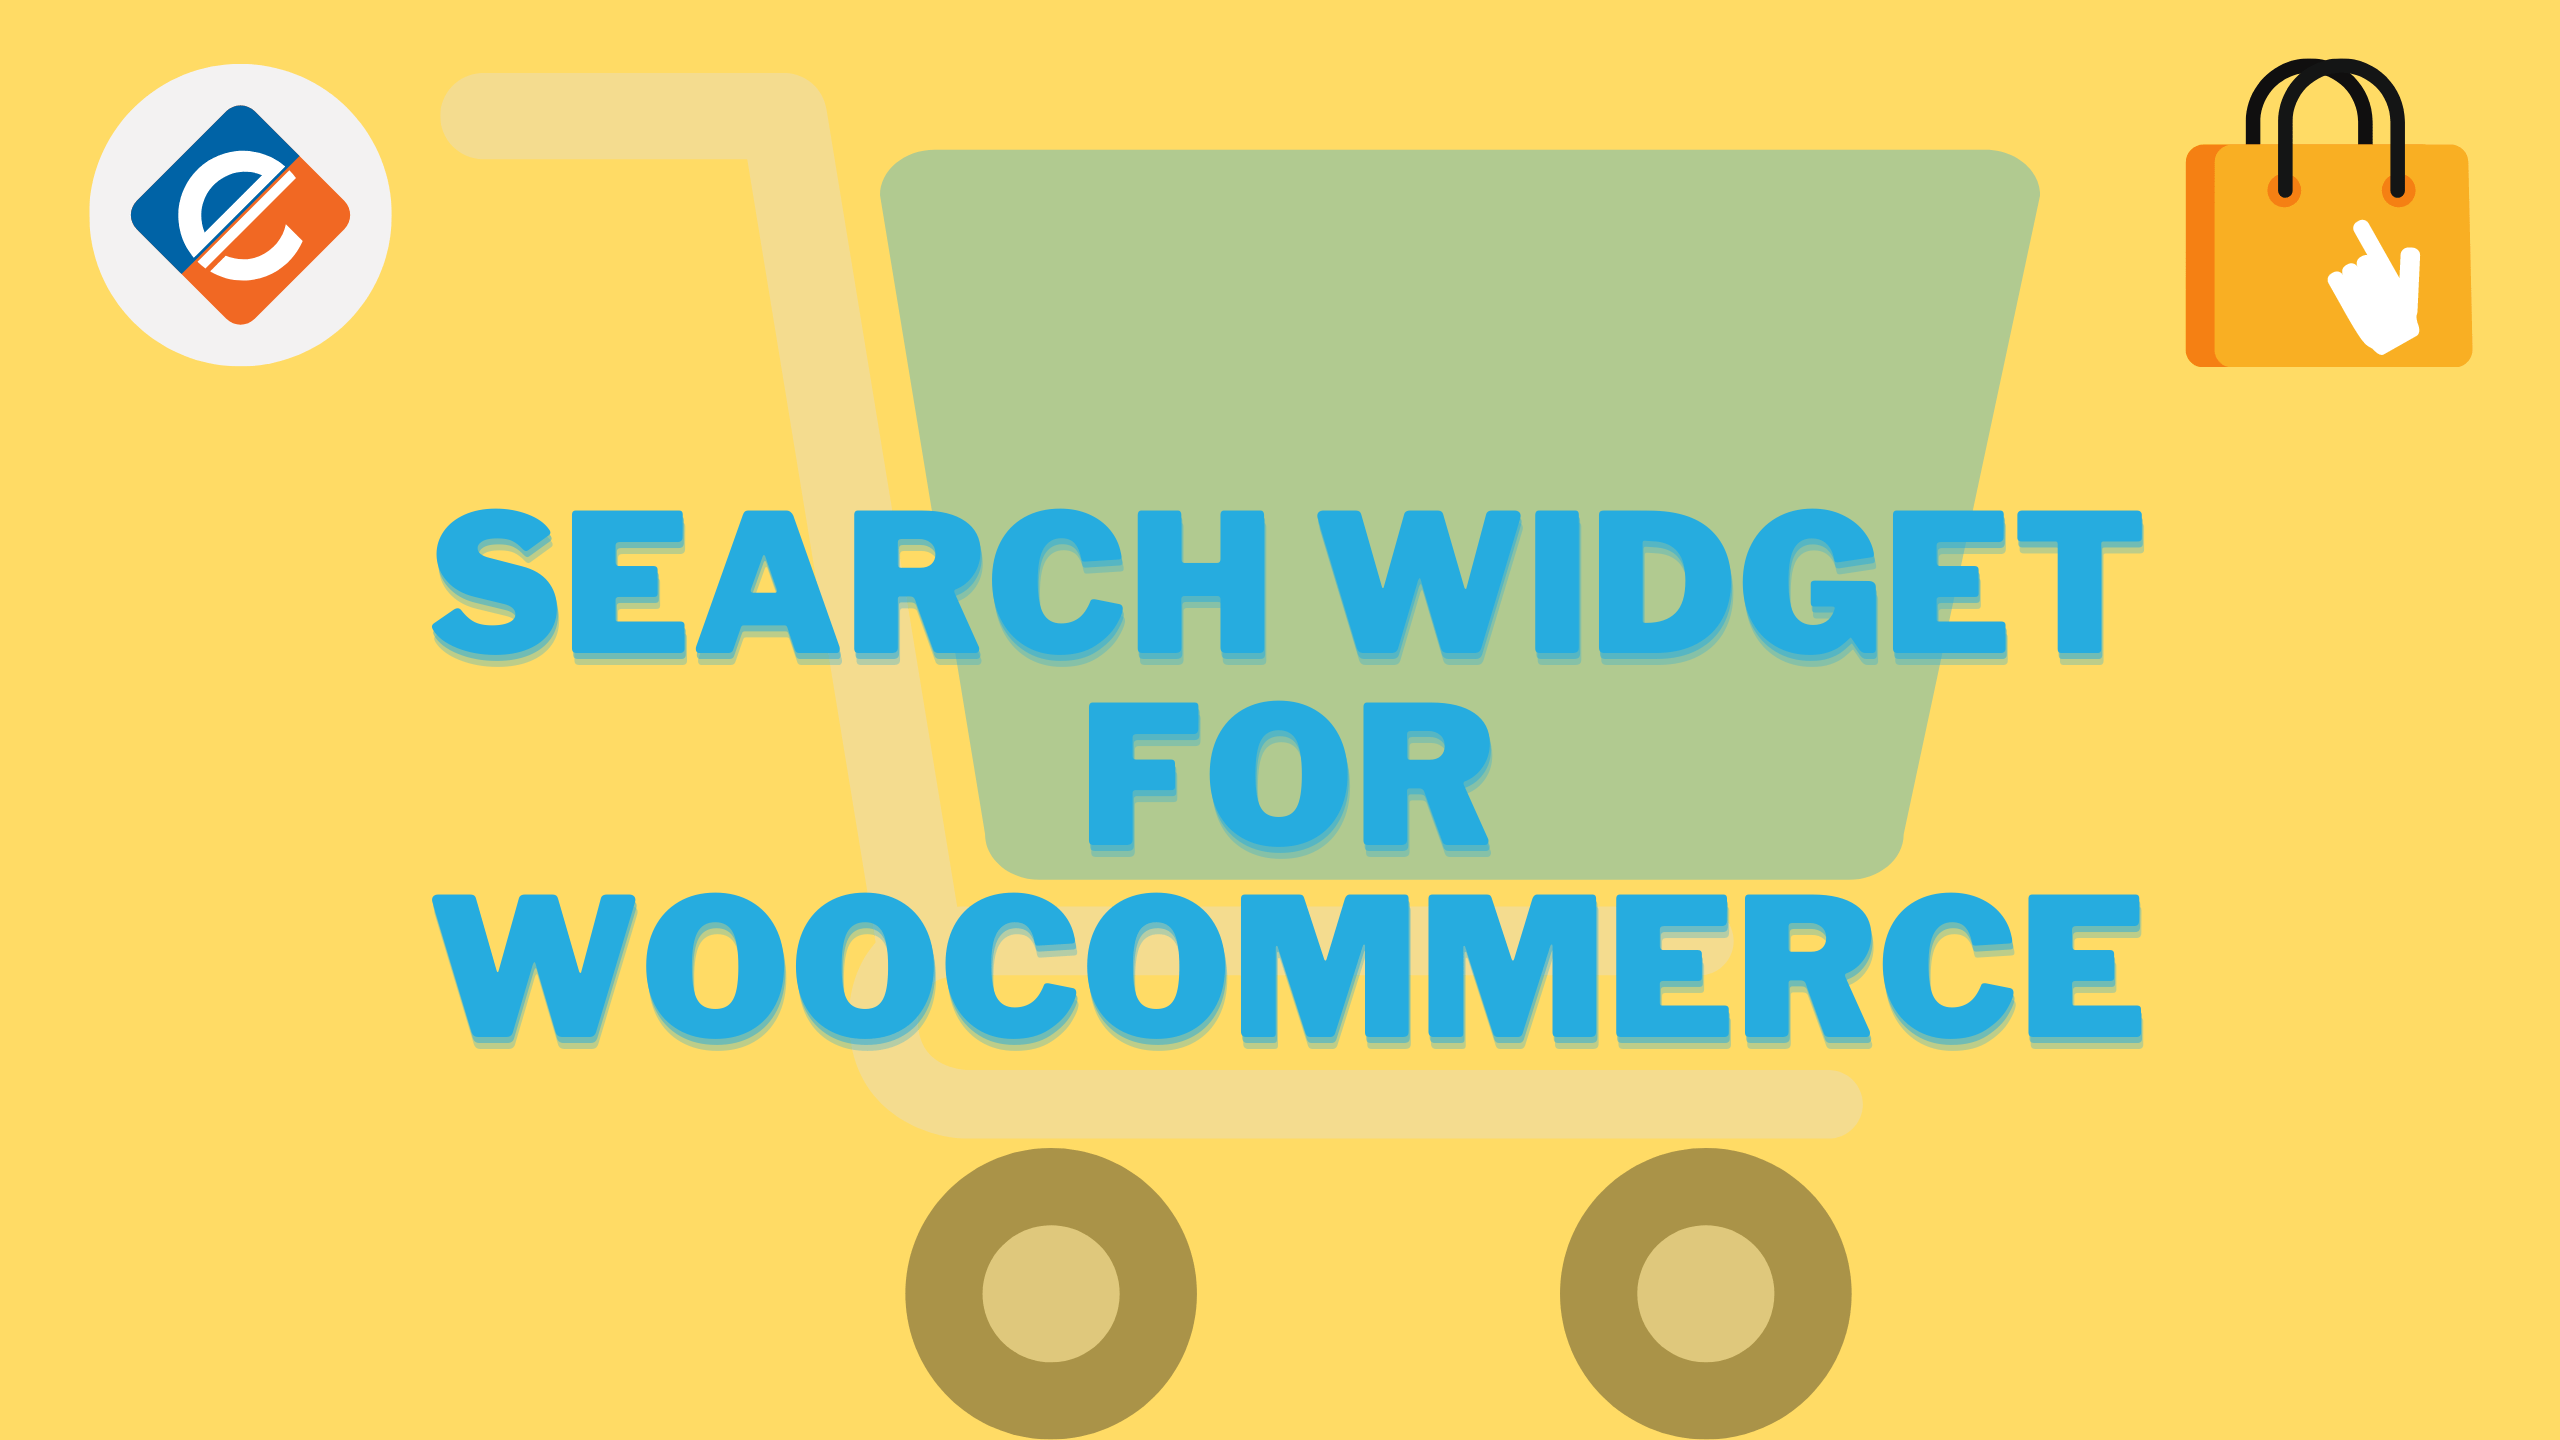 Search Widget for Woocommerce